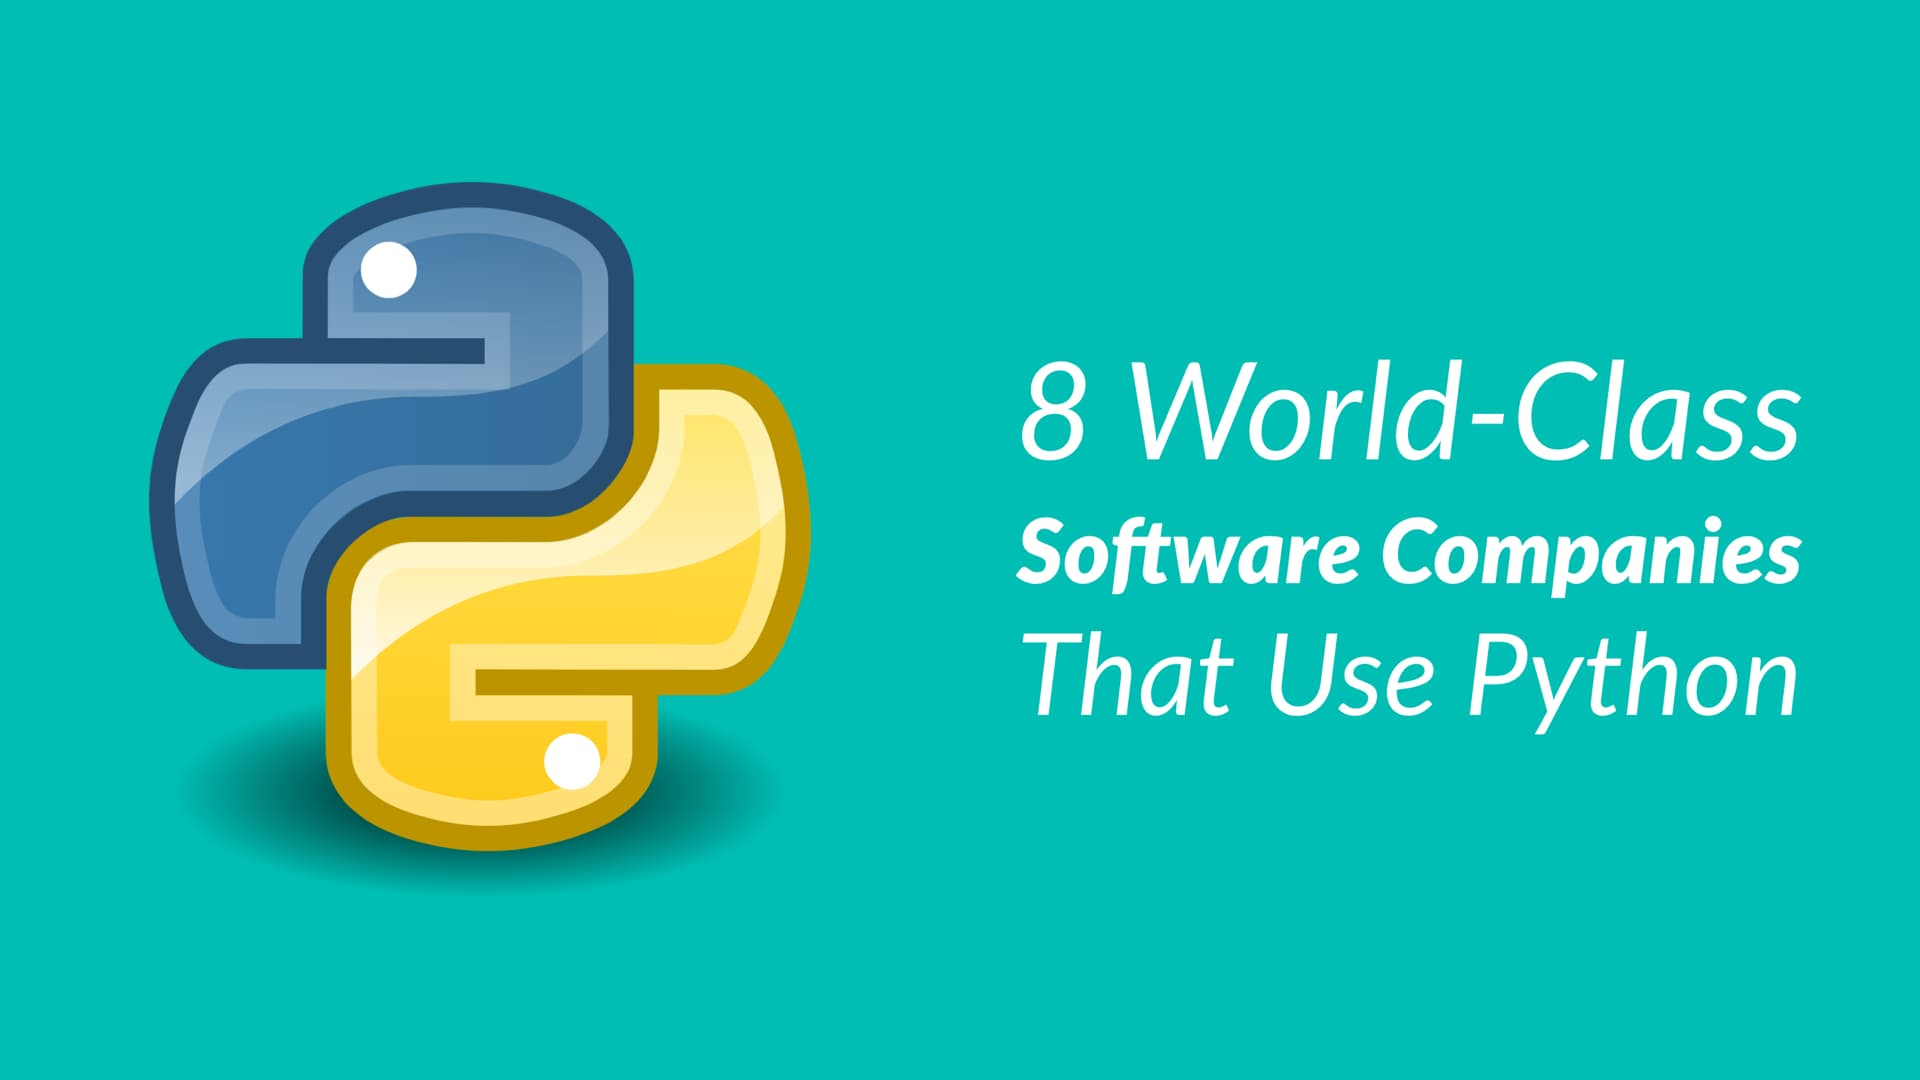 World-Class Software Companies Using Python